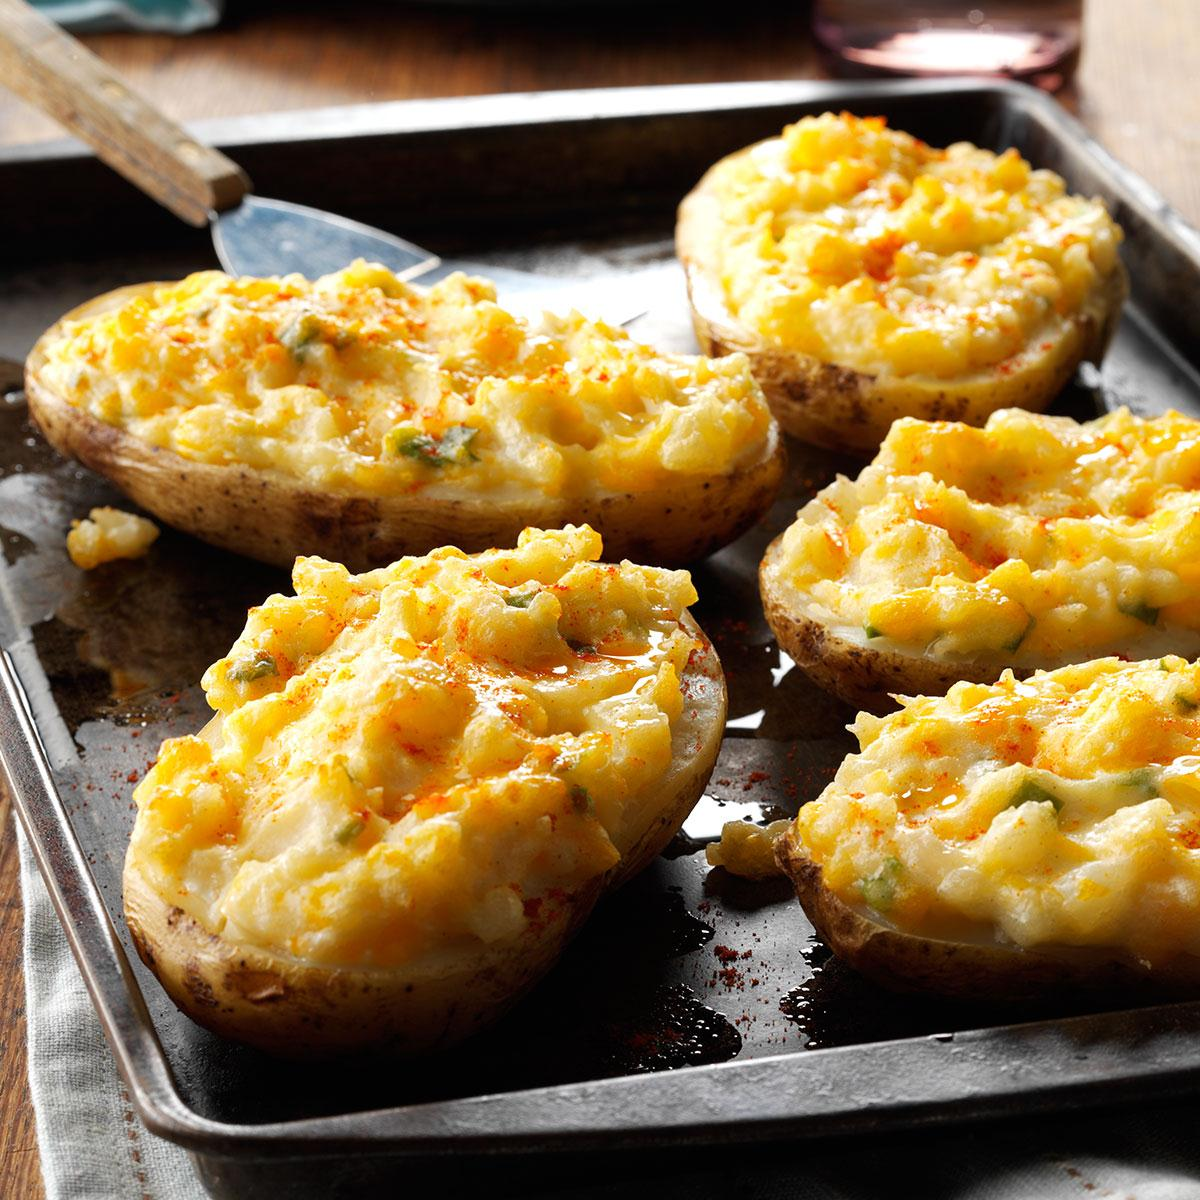 Cheesy Stuffed Baked Potatoes Recipe: How to Make It | Taste of Home